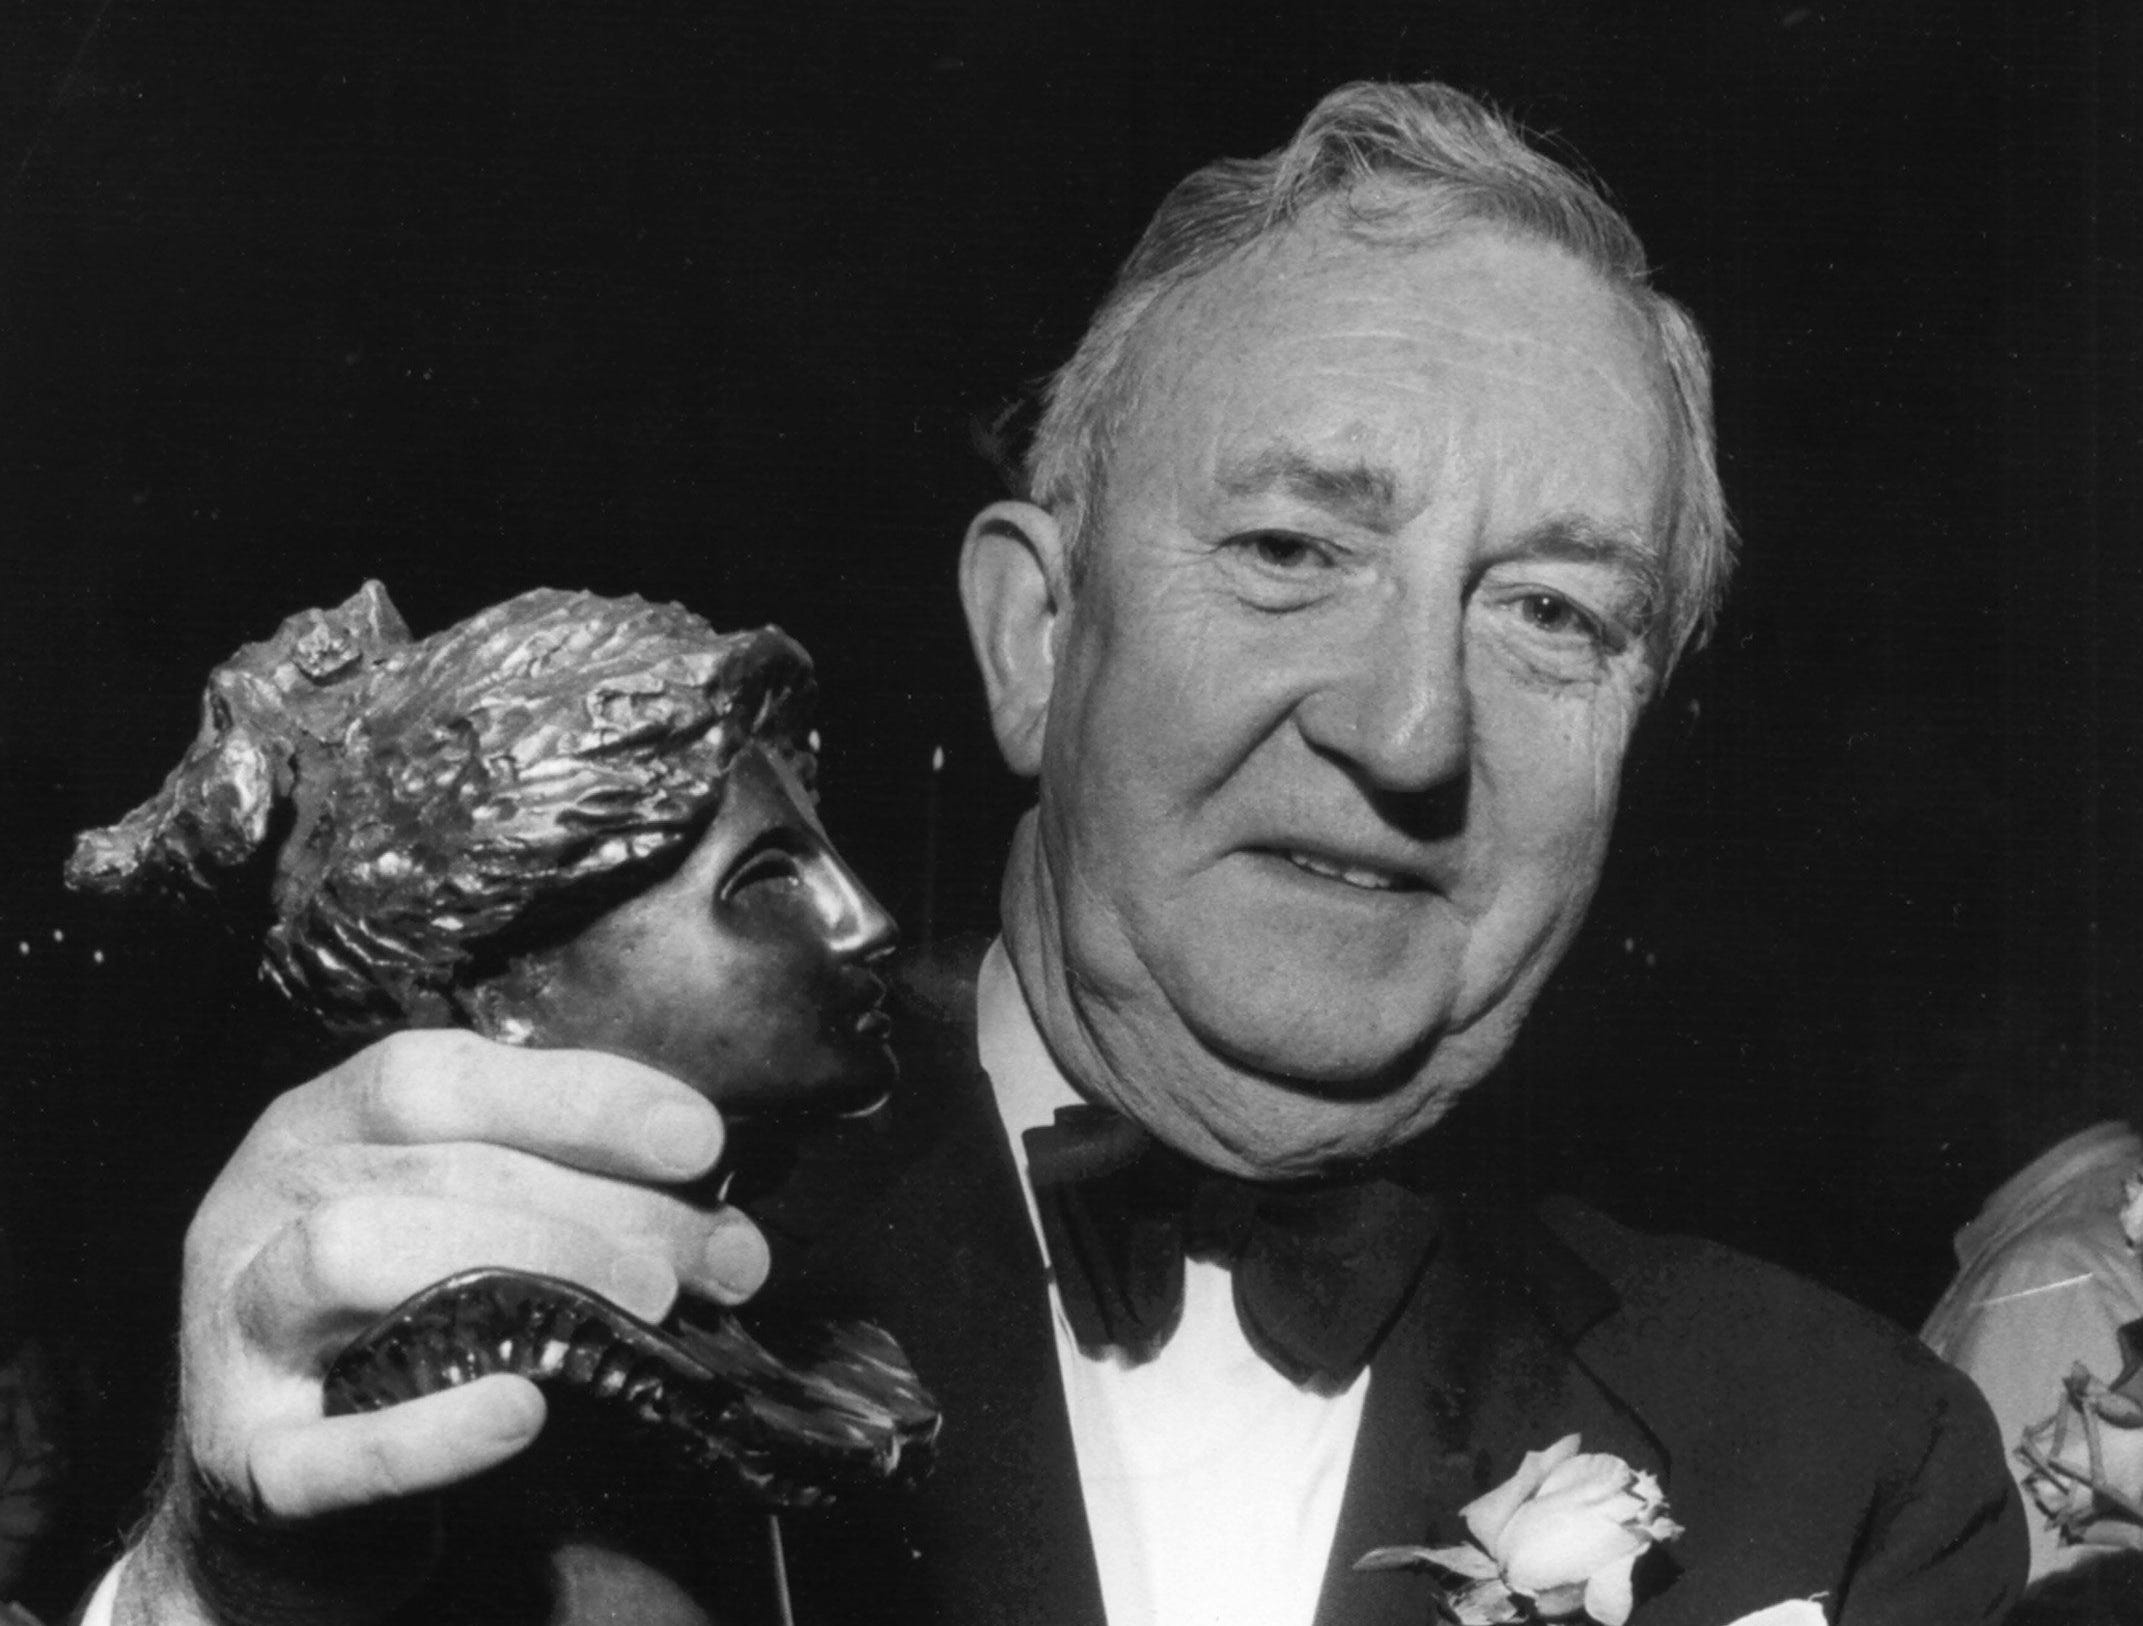 Eric Catmur, president of the Dixon Gallery and Gardens, holds the 1978 Hebe Award at the Memphis Symphony Ball on Oct. 14, 1978. He was presented the award for his efforts on behalf of the arts in Memphis. Catmur, 65, has served as president and treasurer of the Memphis Orchestral Society and has been vice president of the Board of the Memphis Arts Council.